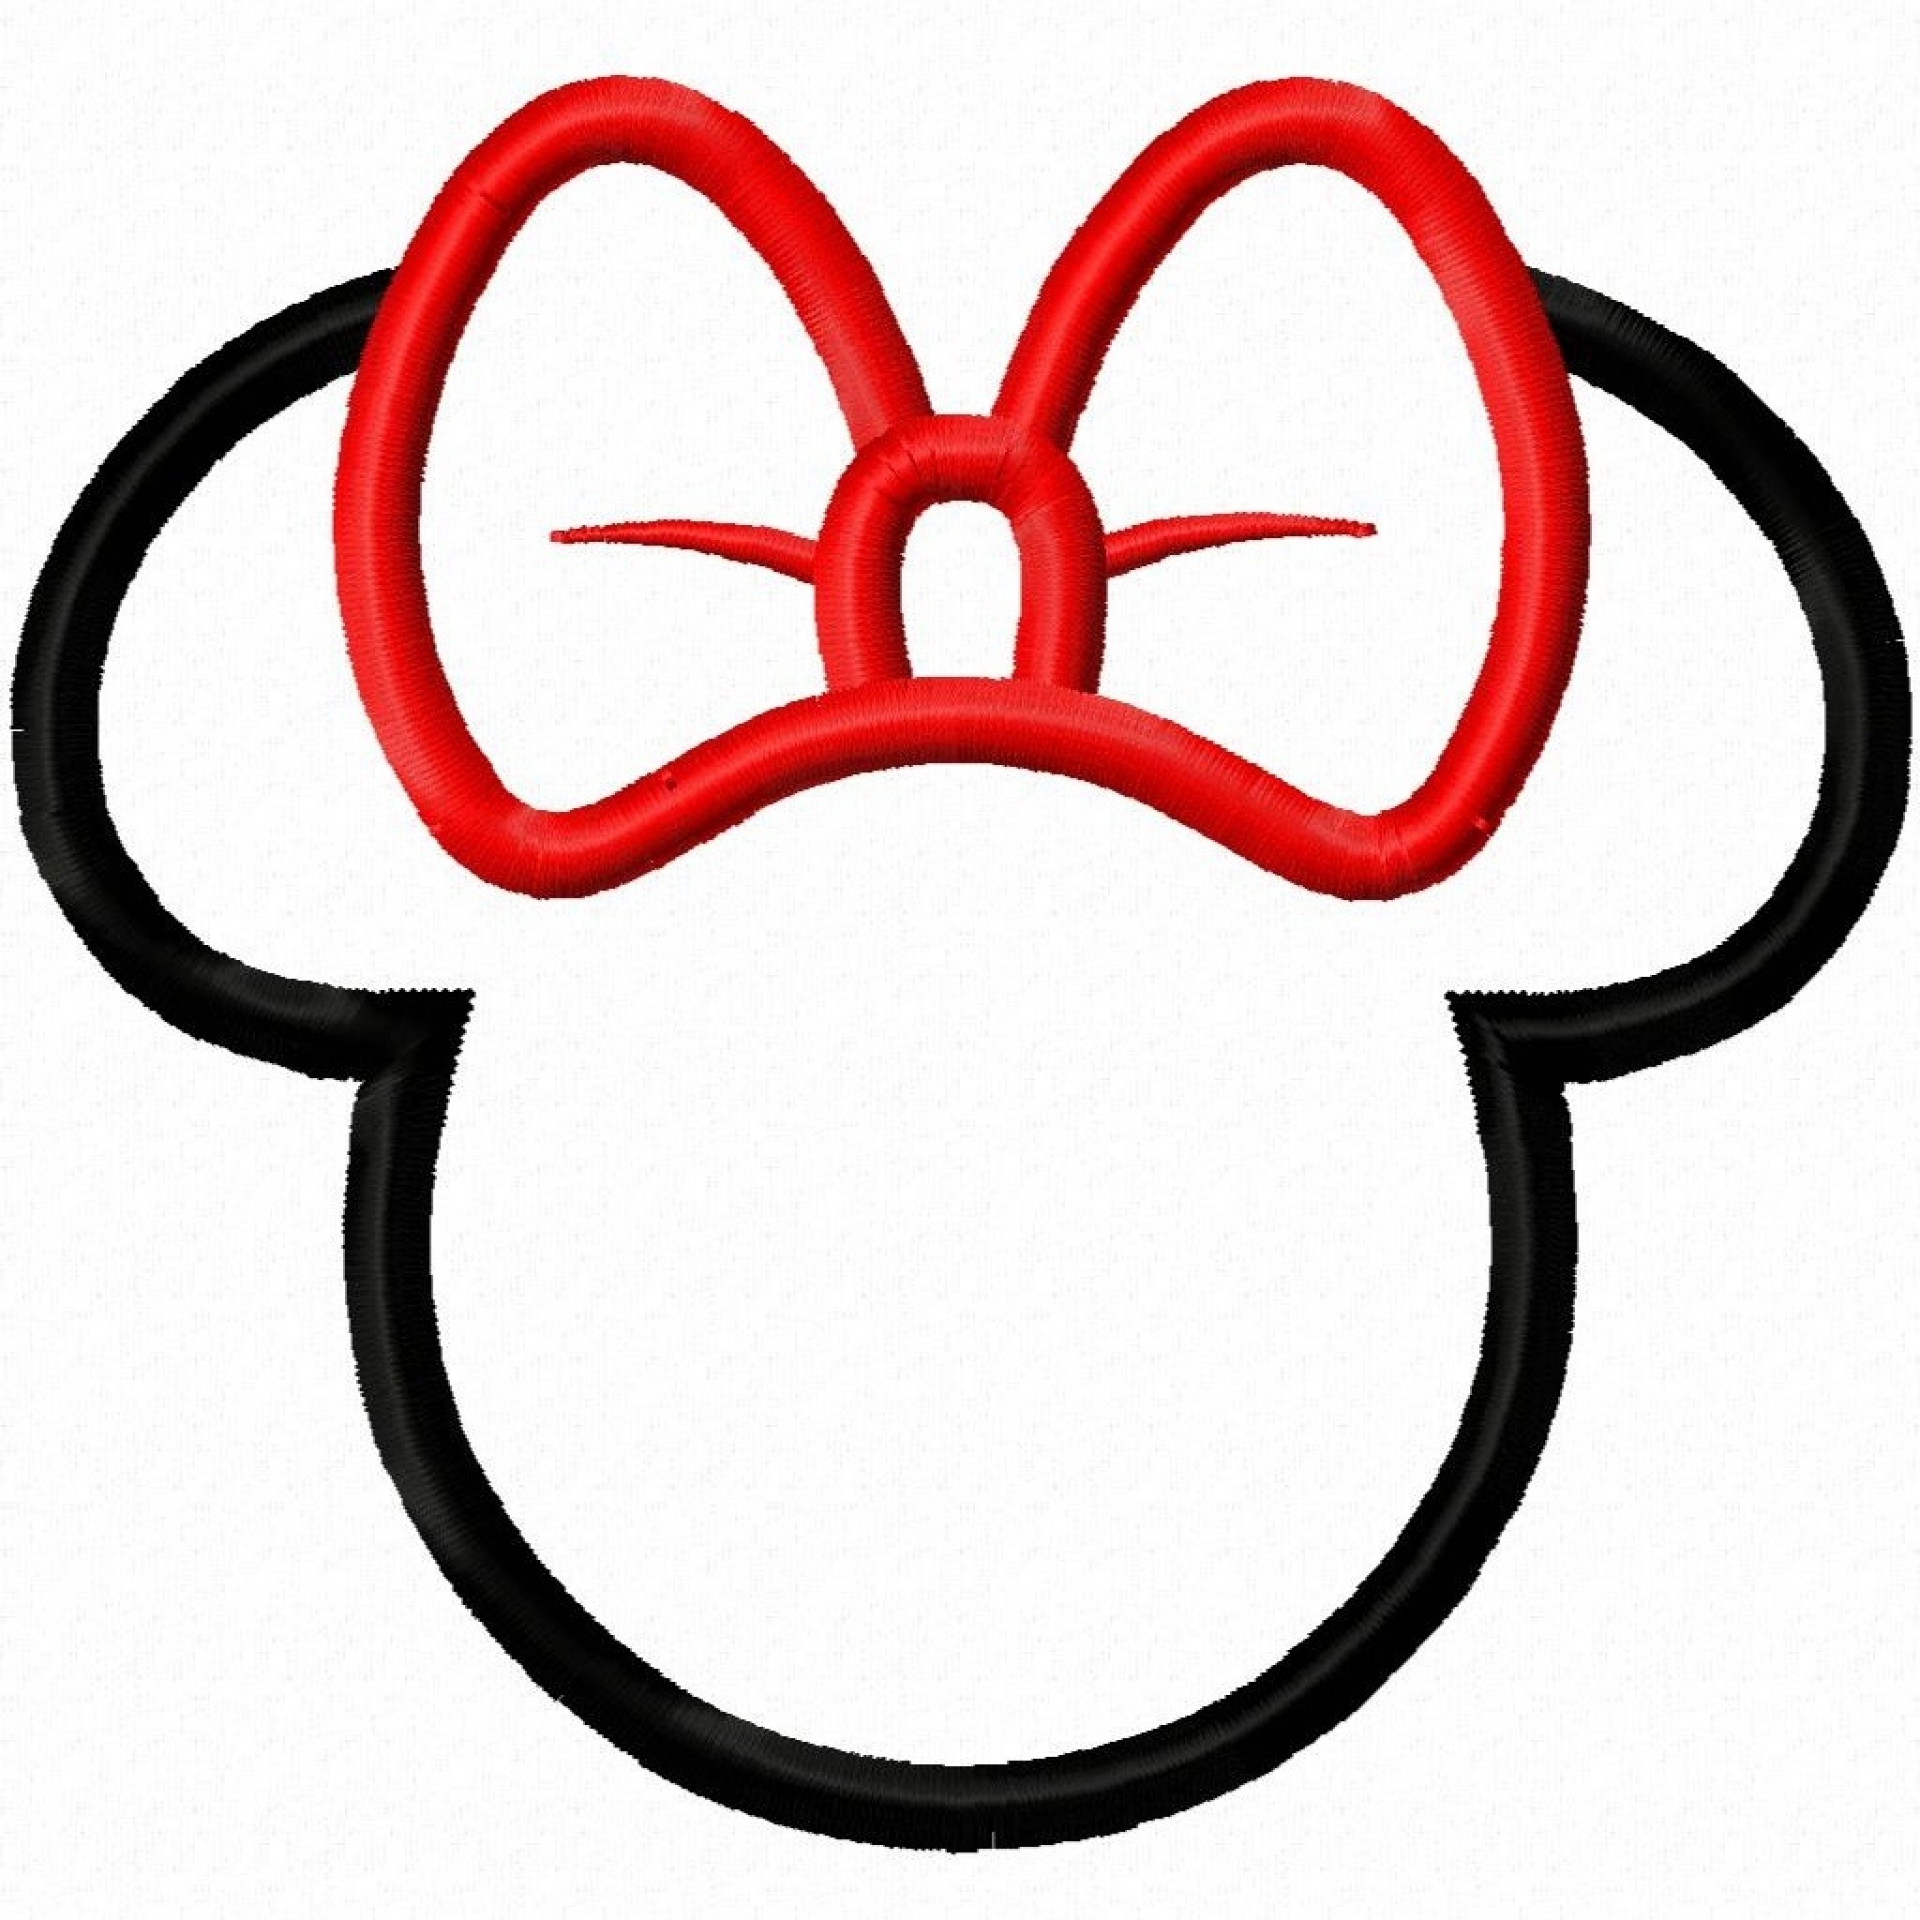 Minny mouse ears clipart black and white jpg royalty free library Free Mickey Mouse Ears Clipart, Download Free Clip Art, Free Clip ... jpg royalty free library